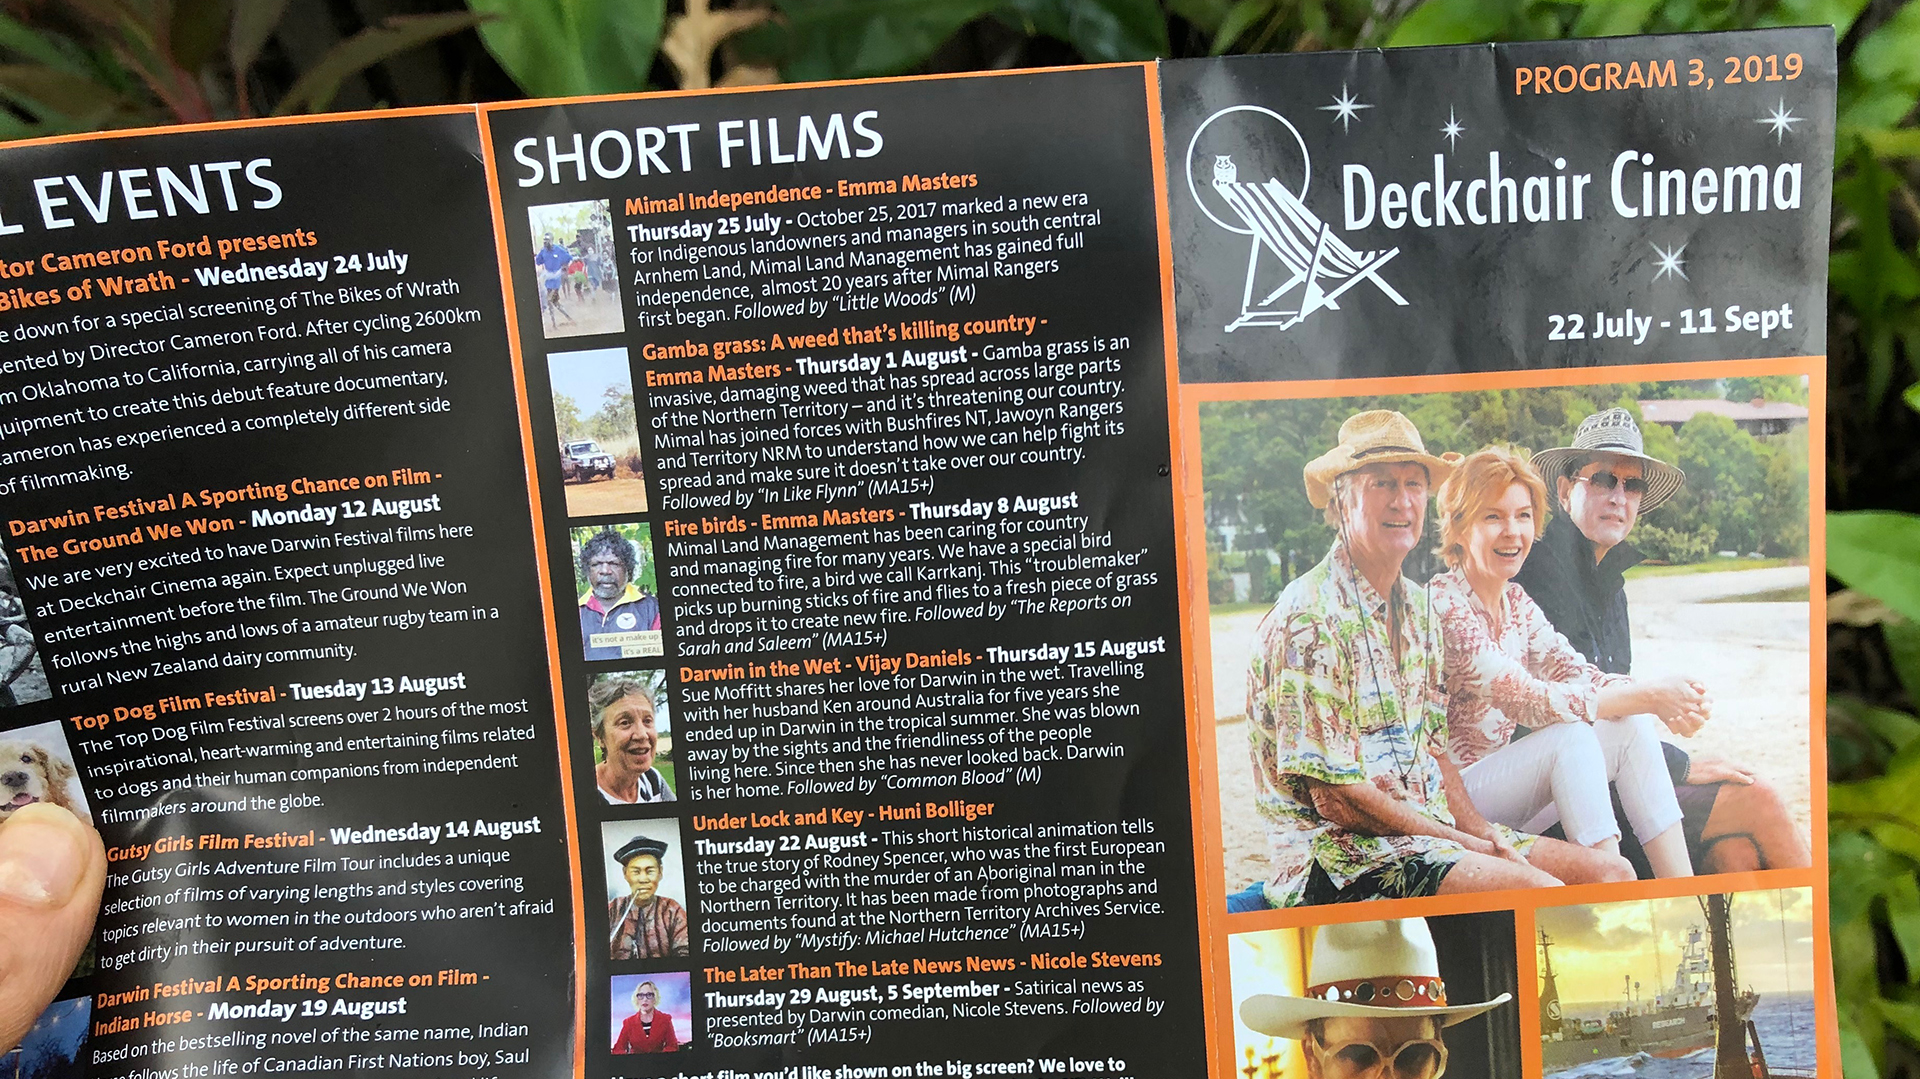 Shorts screen at the Deckchair Cinema